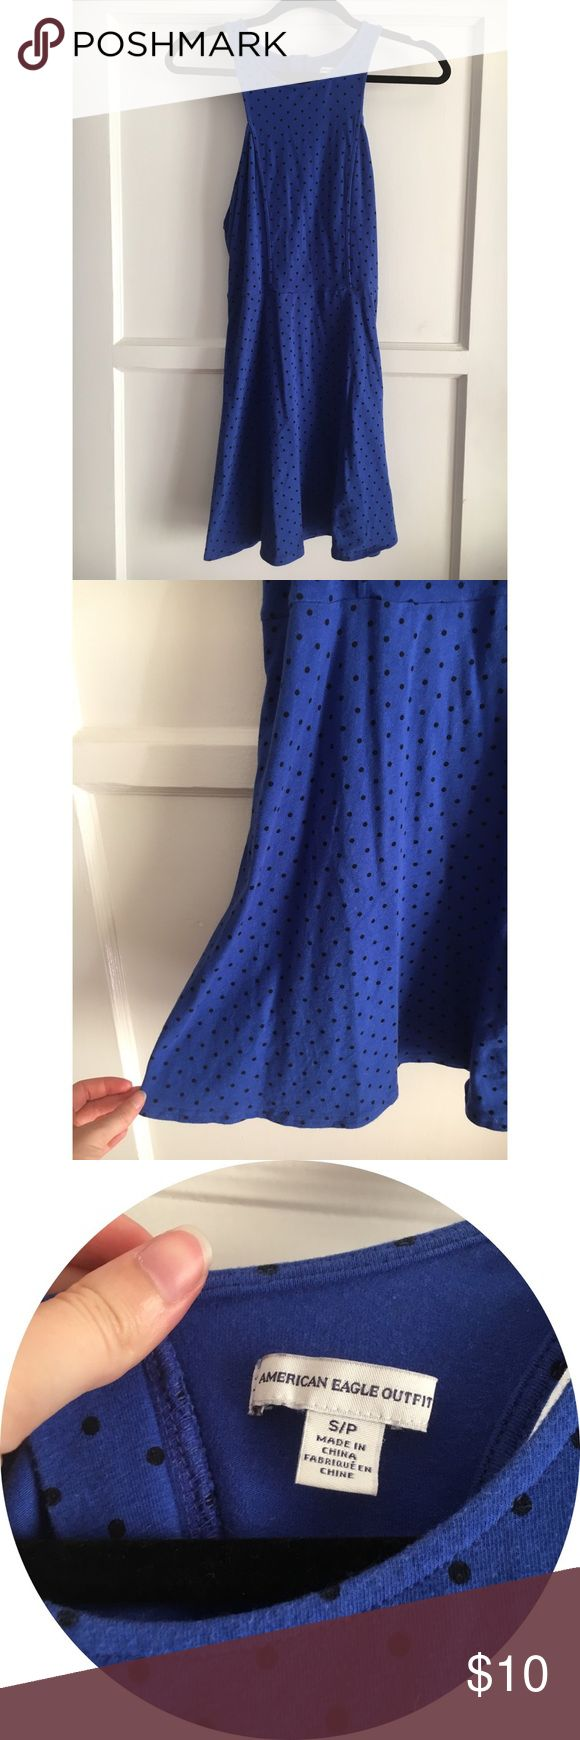 Electric Blue Polka Dot Cut-Out Dress 100% cotton. Razorback with cut out. Worn a couple times. American Eagle Outfitters Dresses Mini